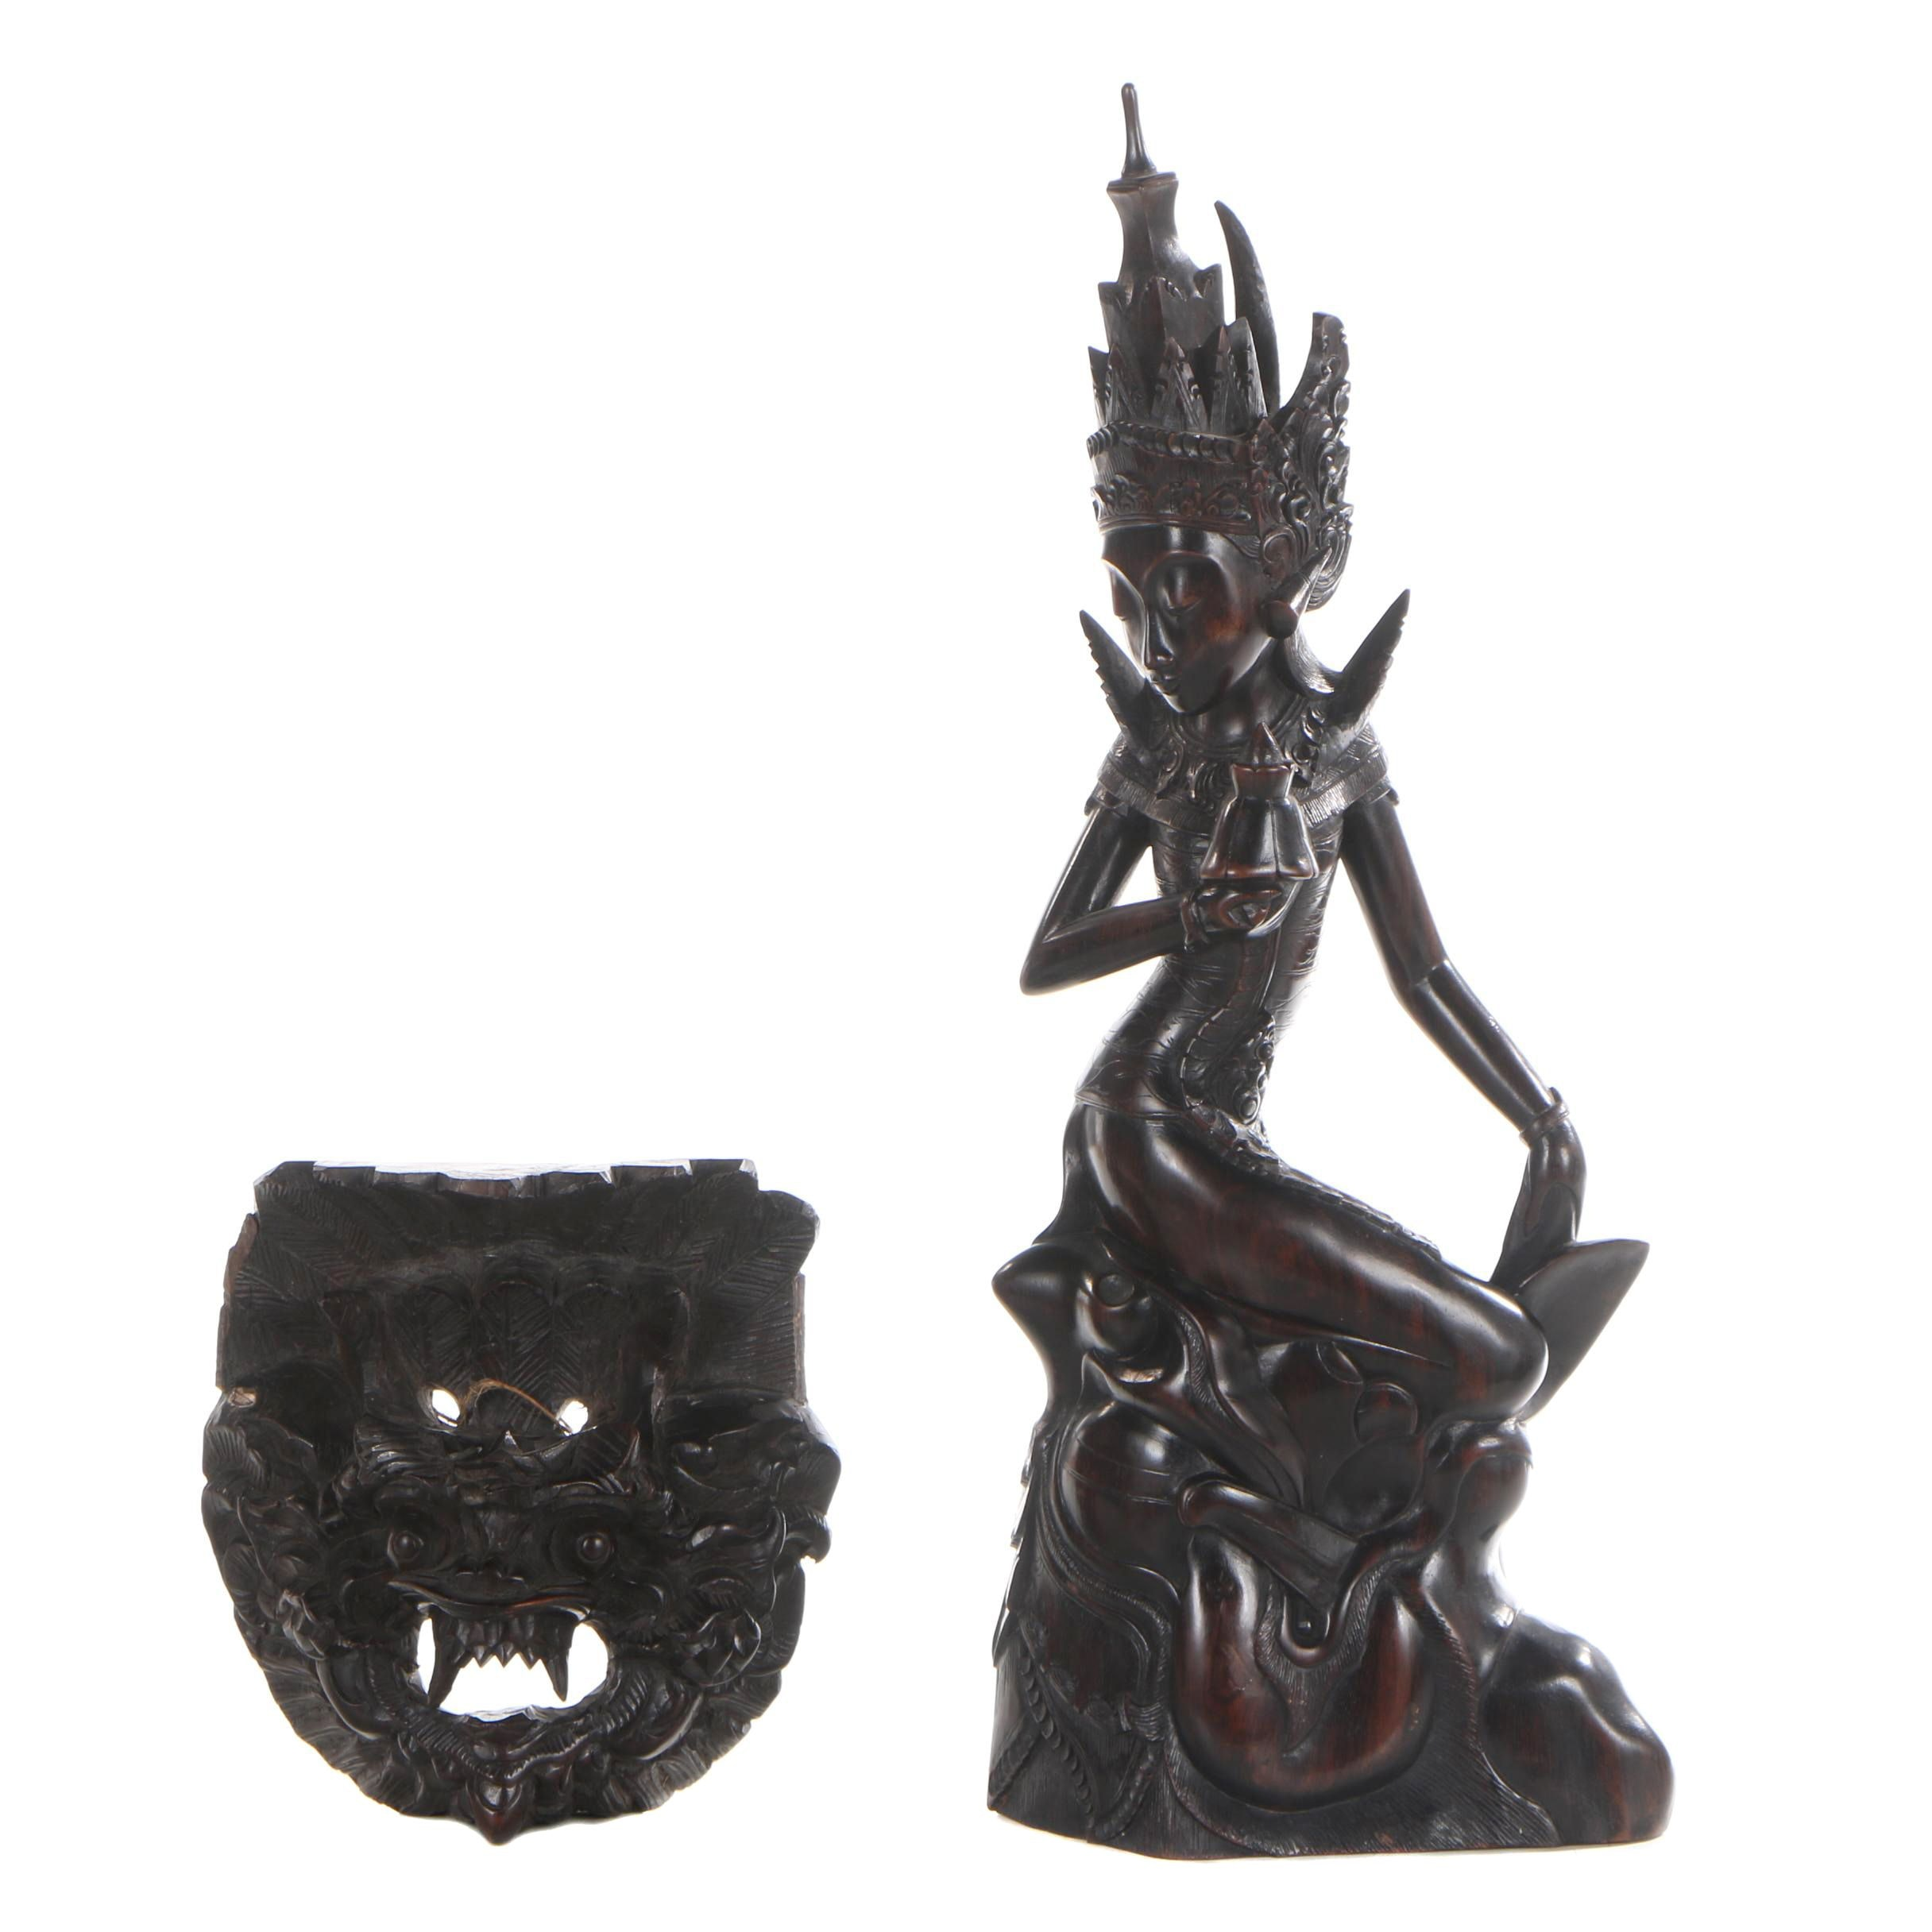 Balinese Carved Wood Figure and Barong Mask